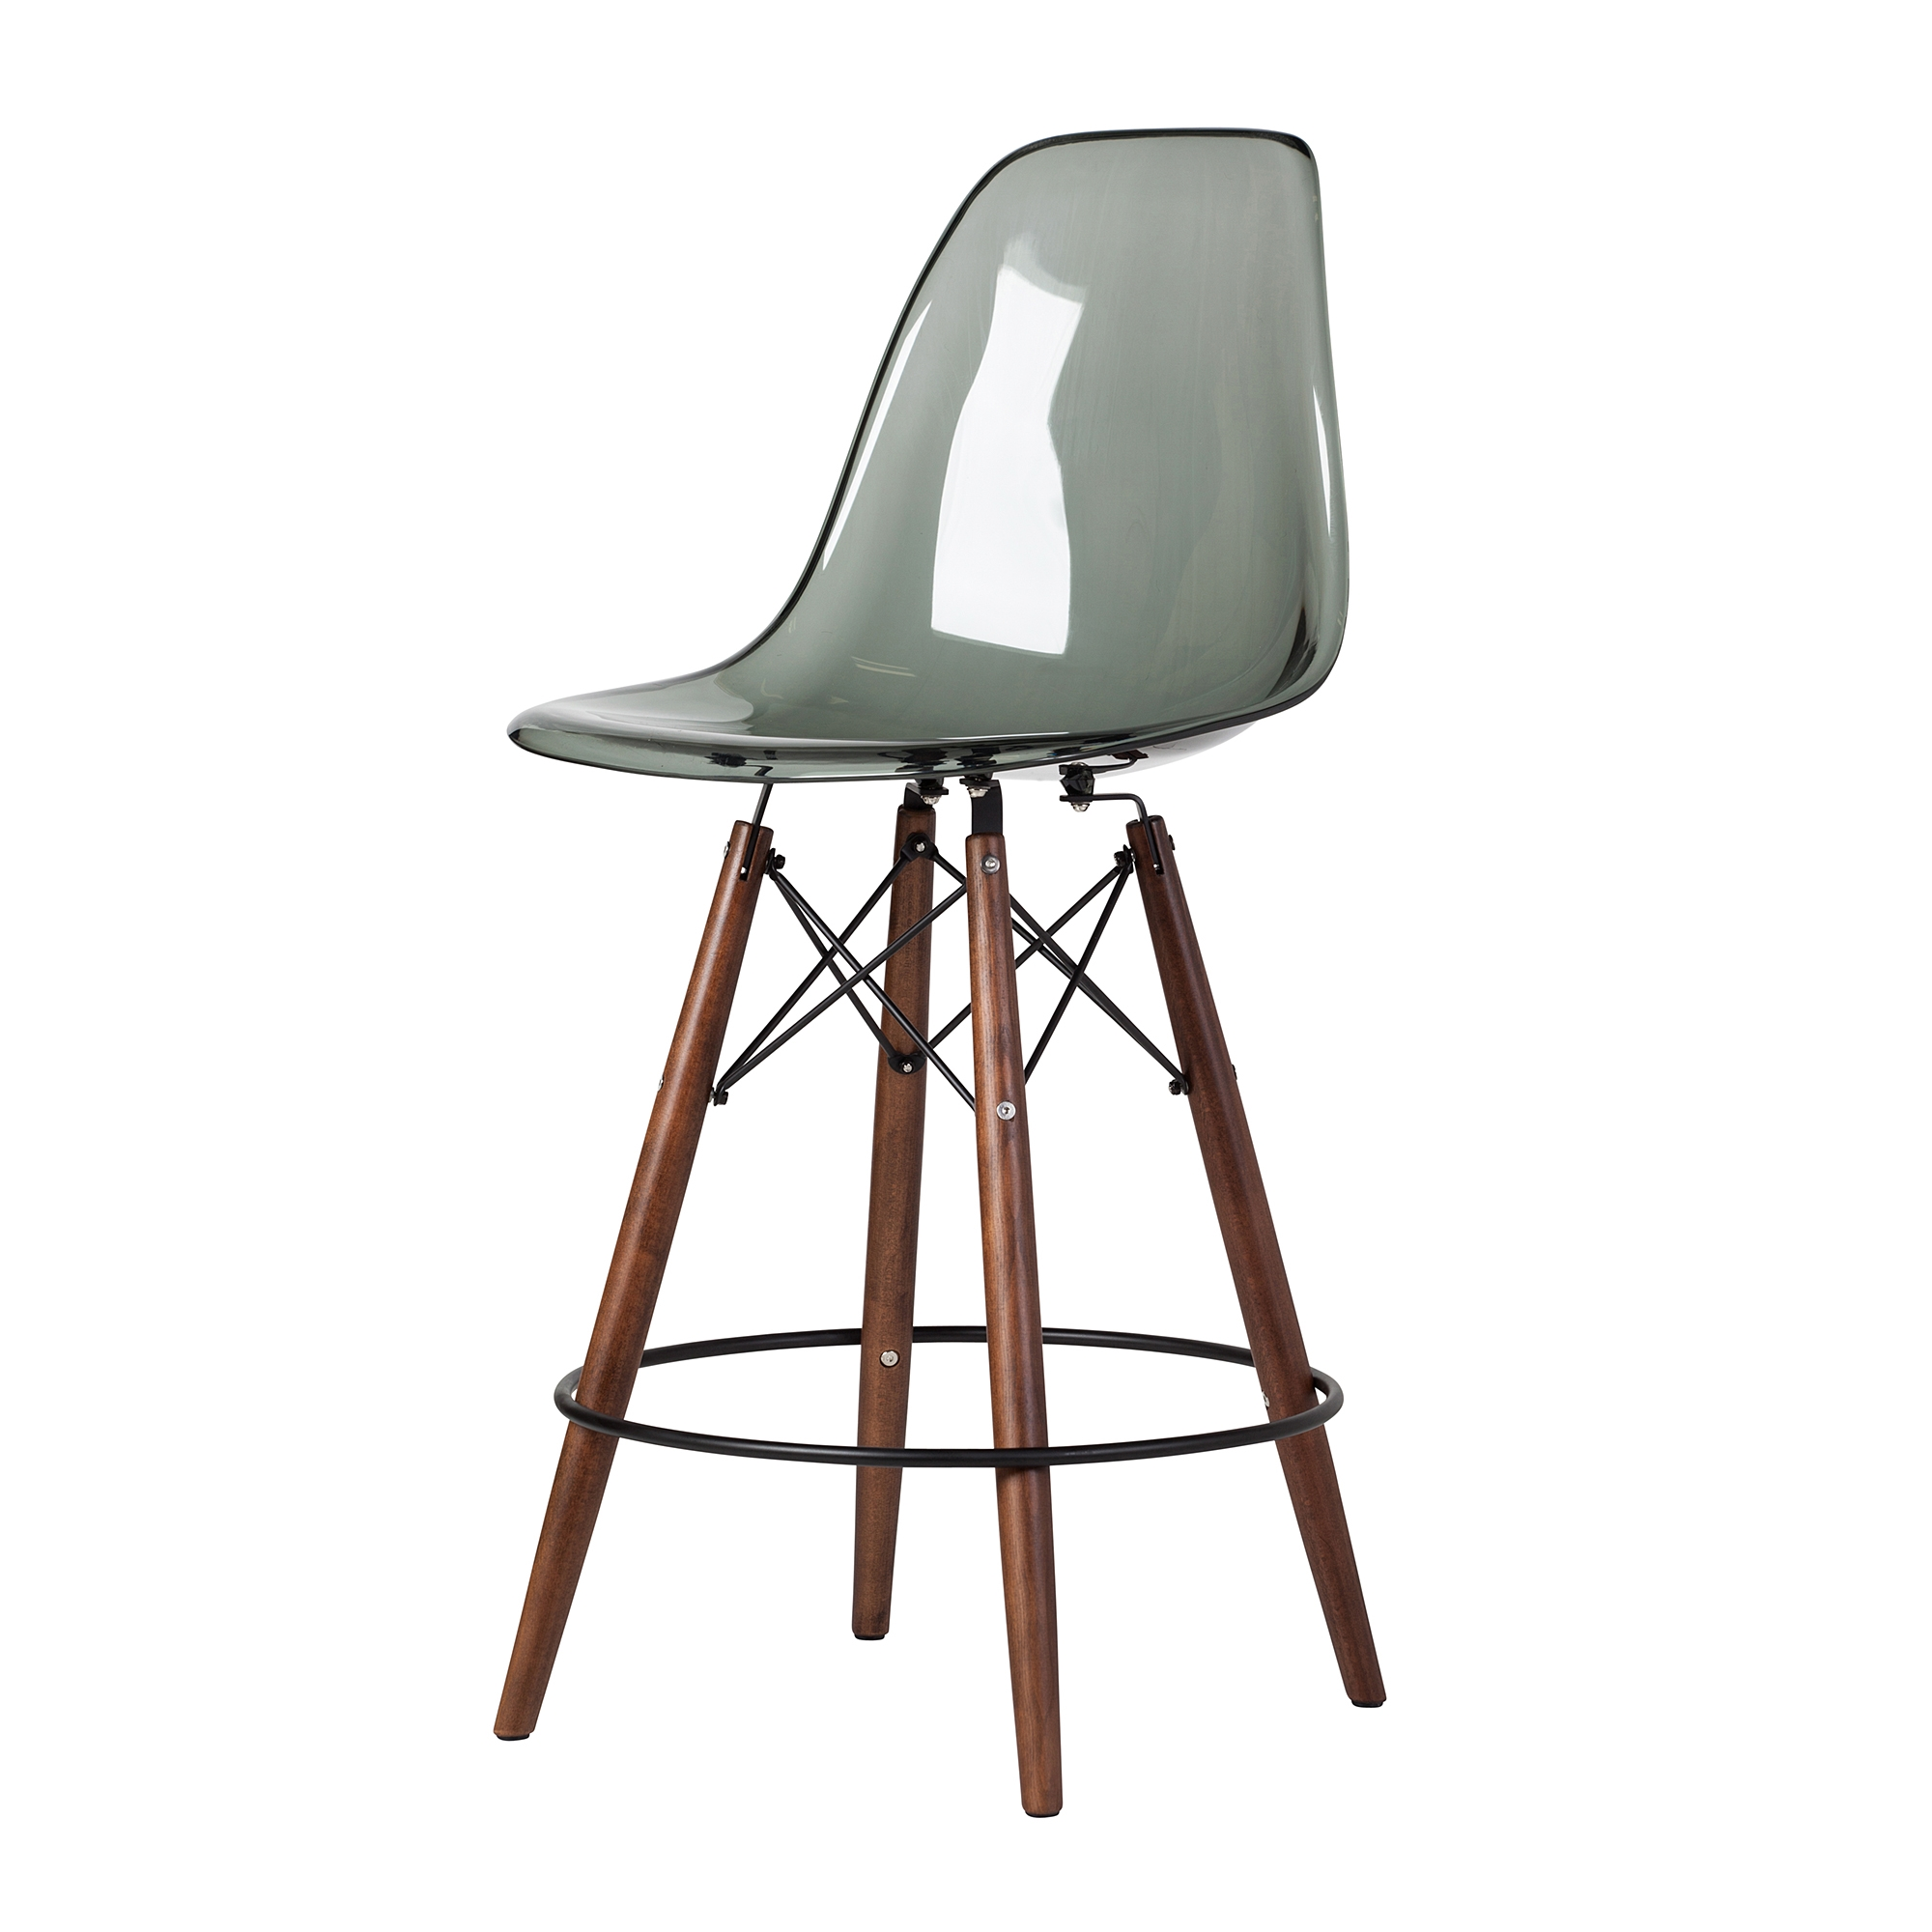 Eames Dsw Molded Mid Century Acrylic Counter Stool In Smoke